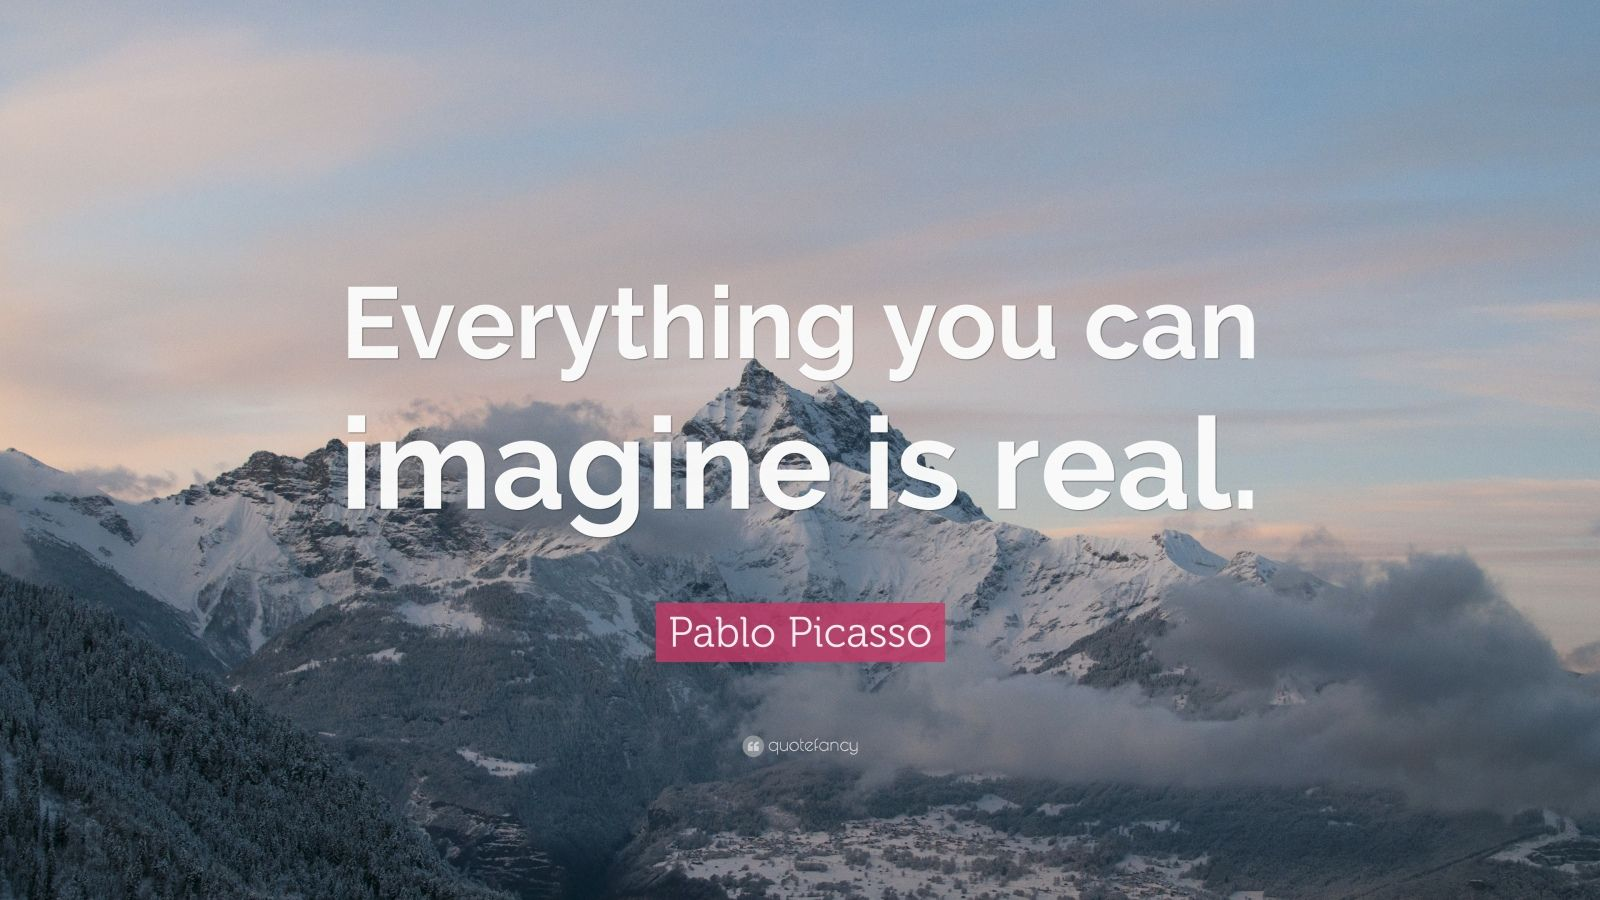 Pablo Picasso Quote: Everything you can imagine is real. (11 ...